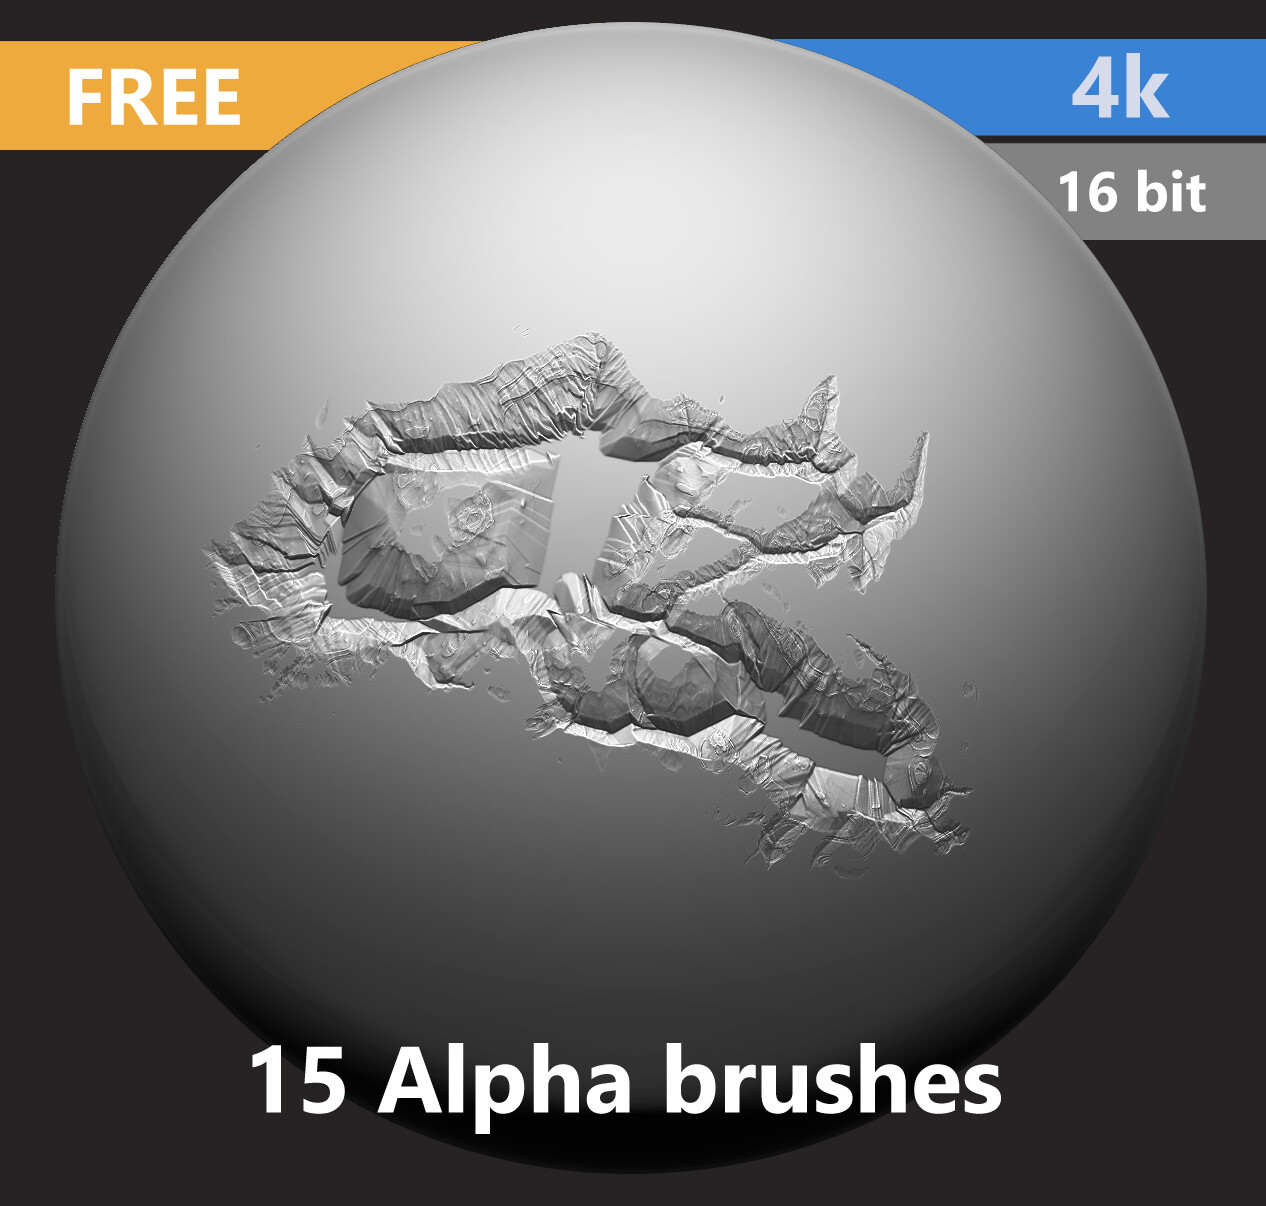 Free 15 Alpha Brushes (4k resolution, 16 bit) - Cracks, Rock damage etc.